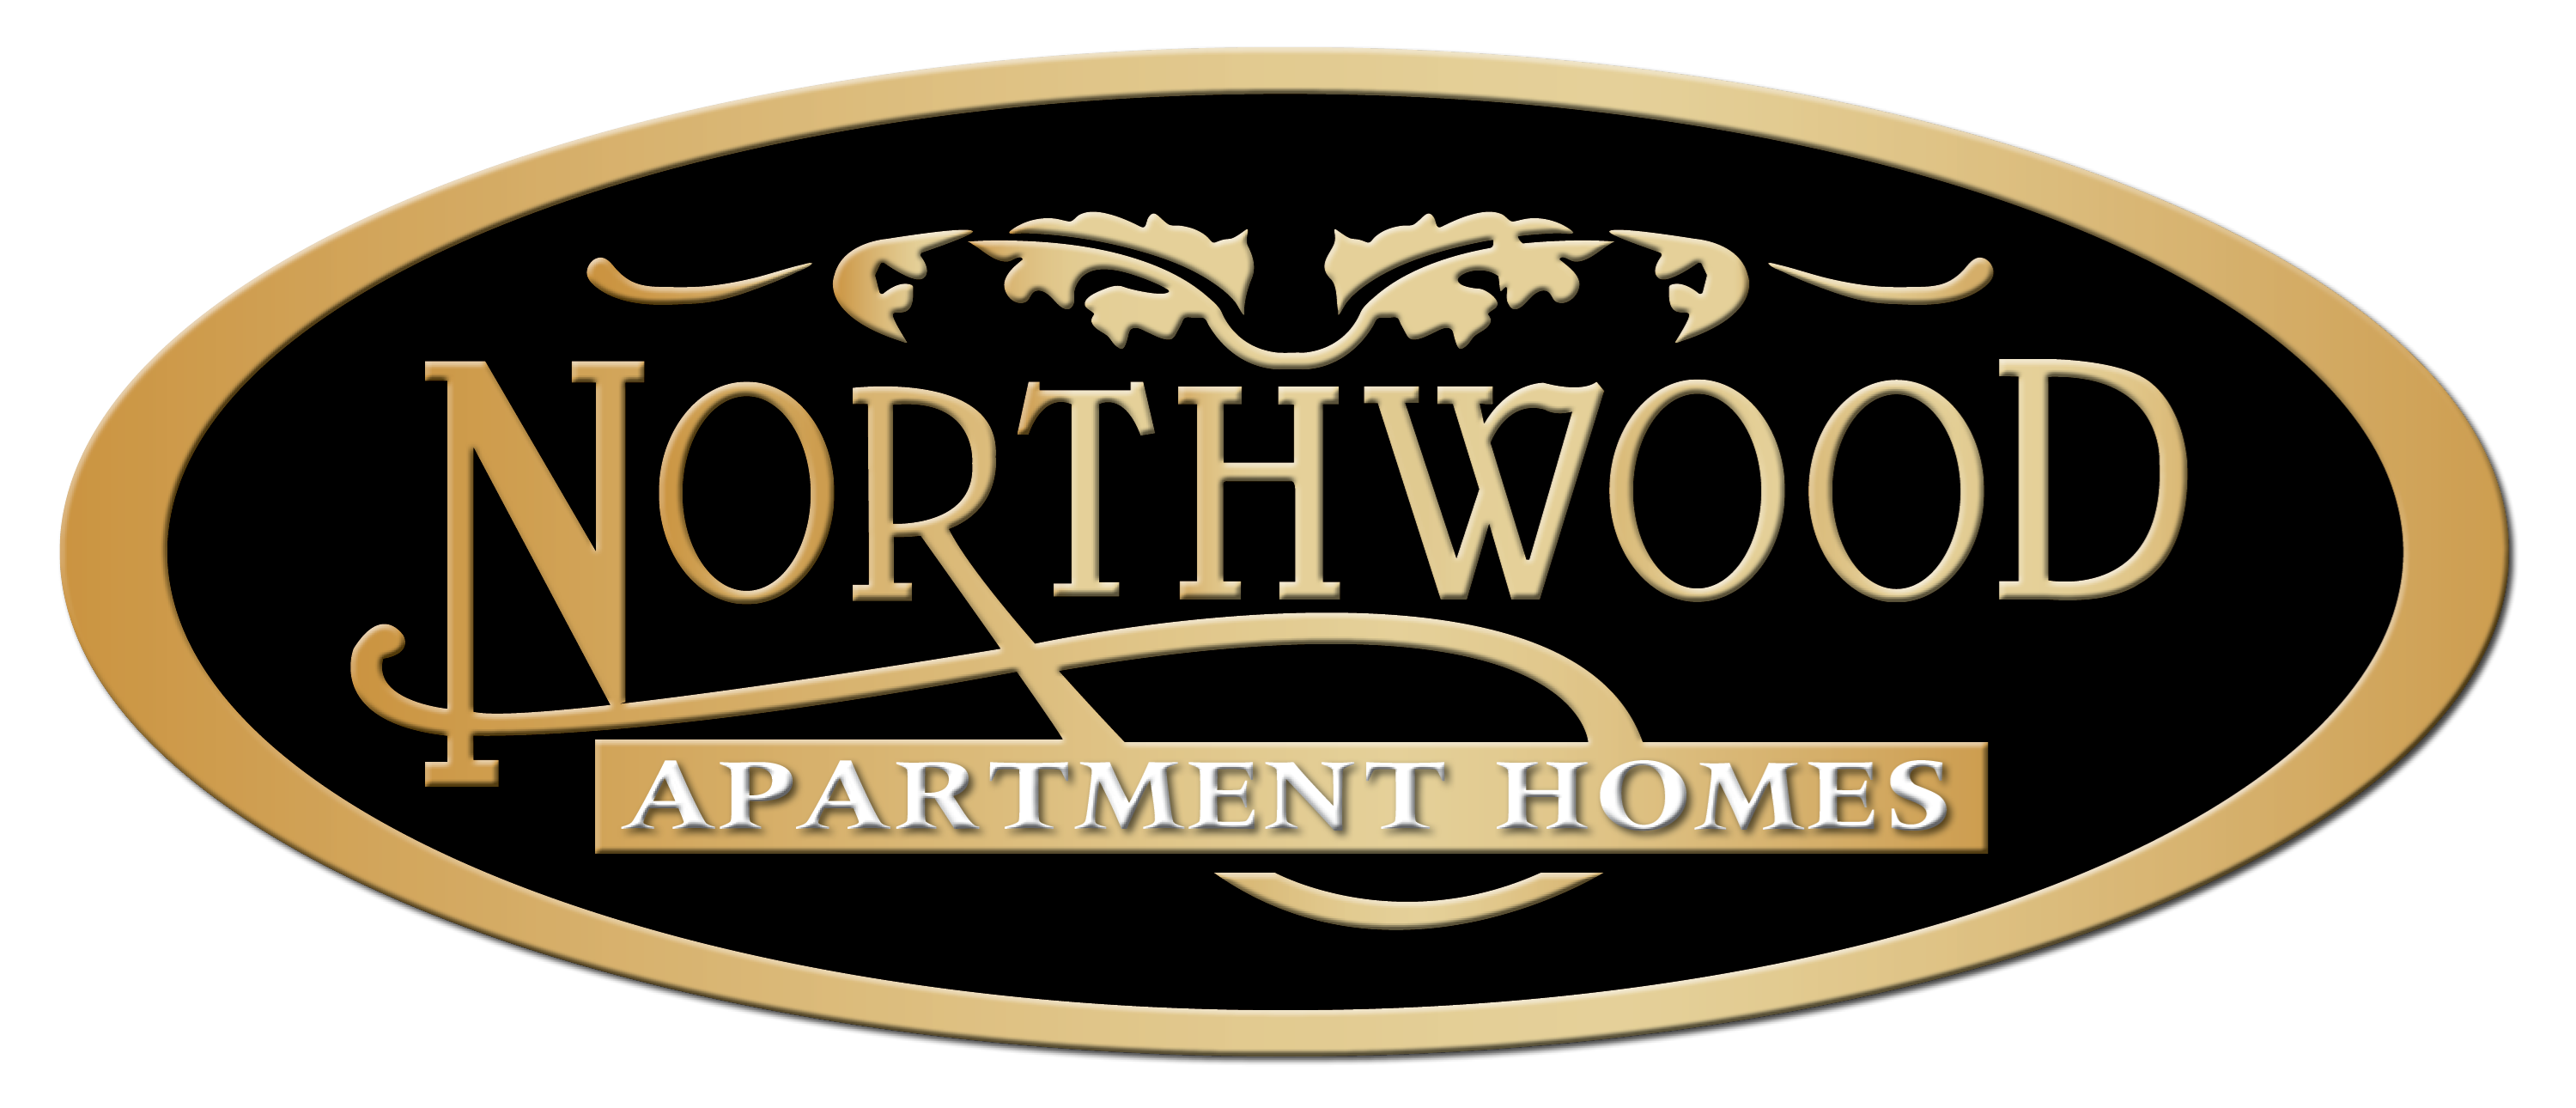 Northwood, Macon, GA,31220